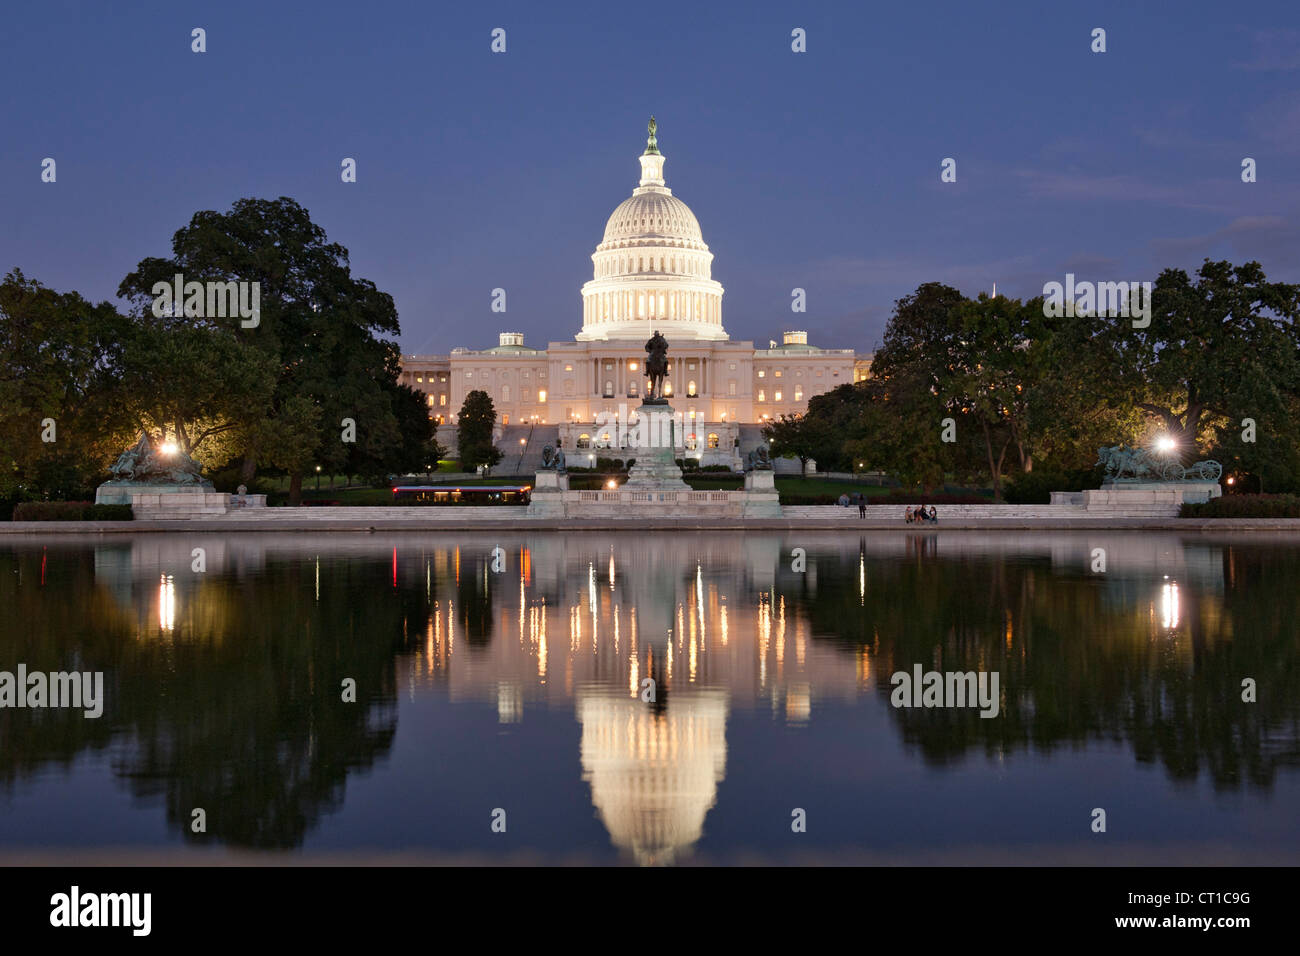 Capitol building reflected in the reflecting pool in Washington DC, USA. - Stock Image